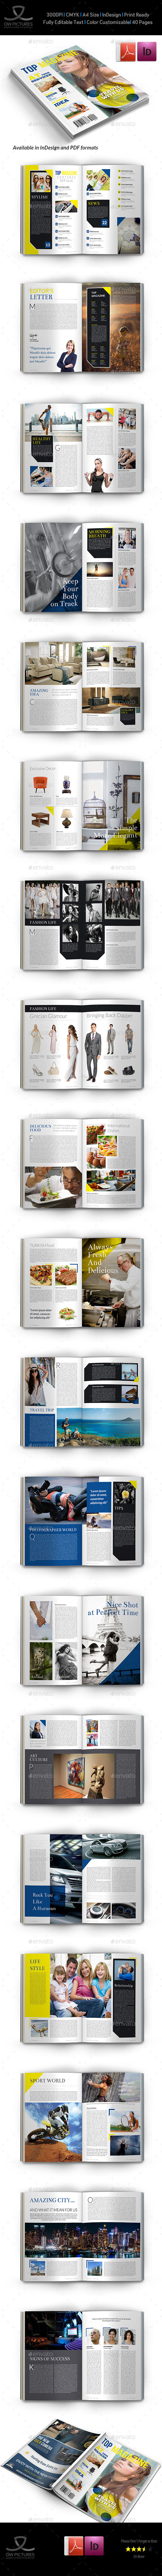 Top Magazine Template - 40 Pages - Magazines Print Templates